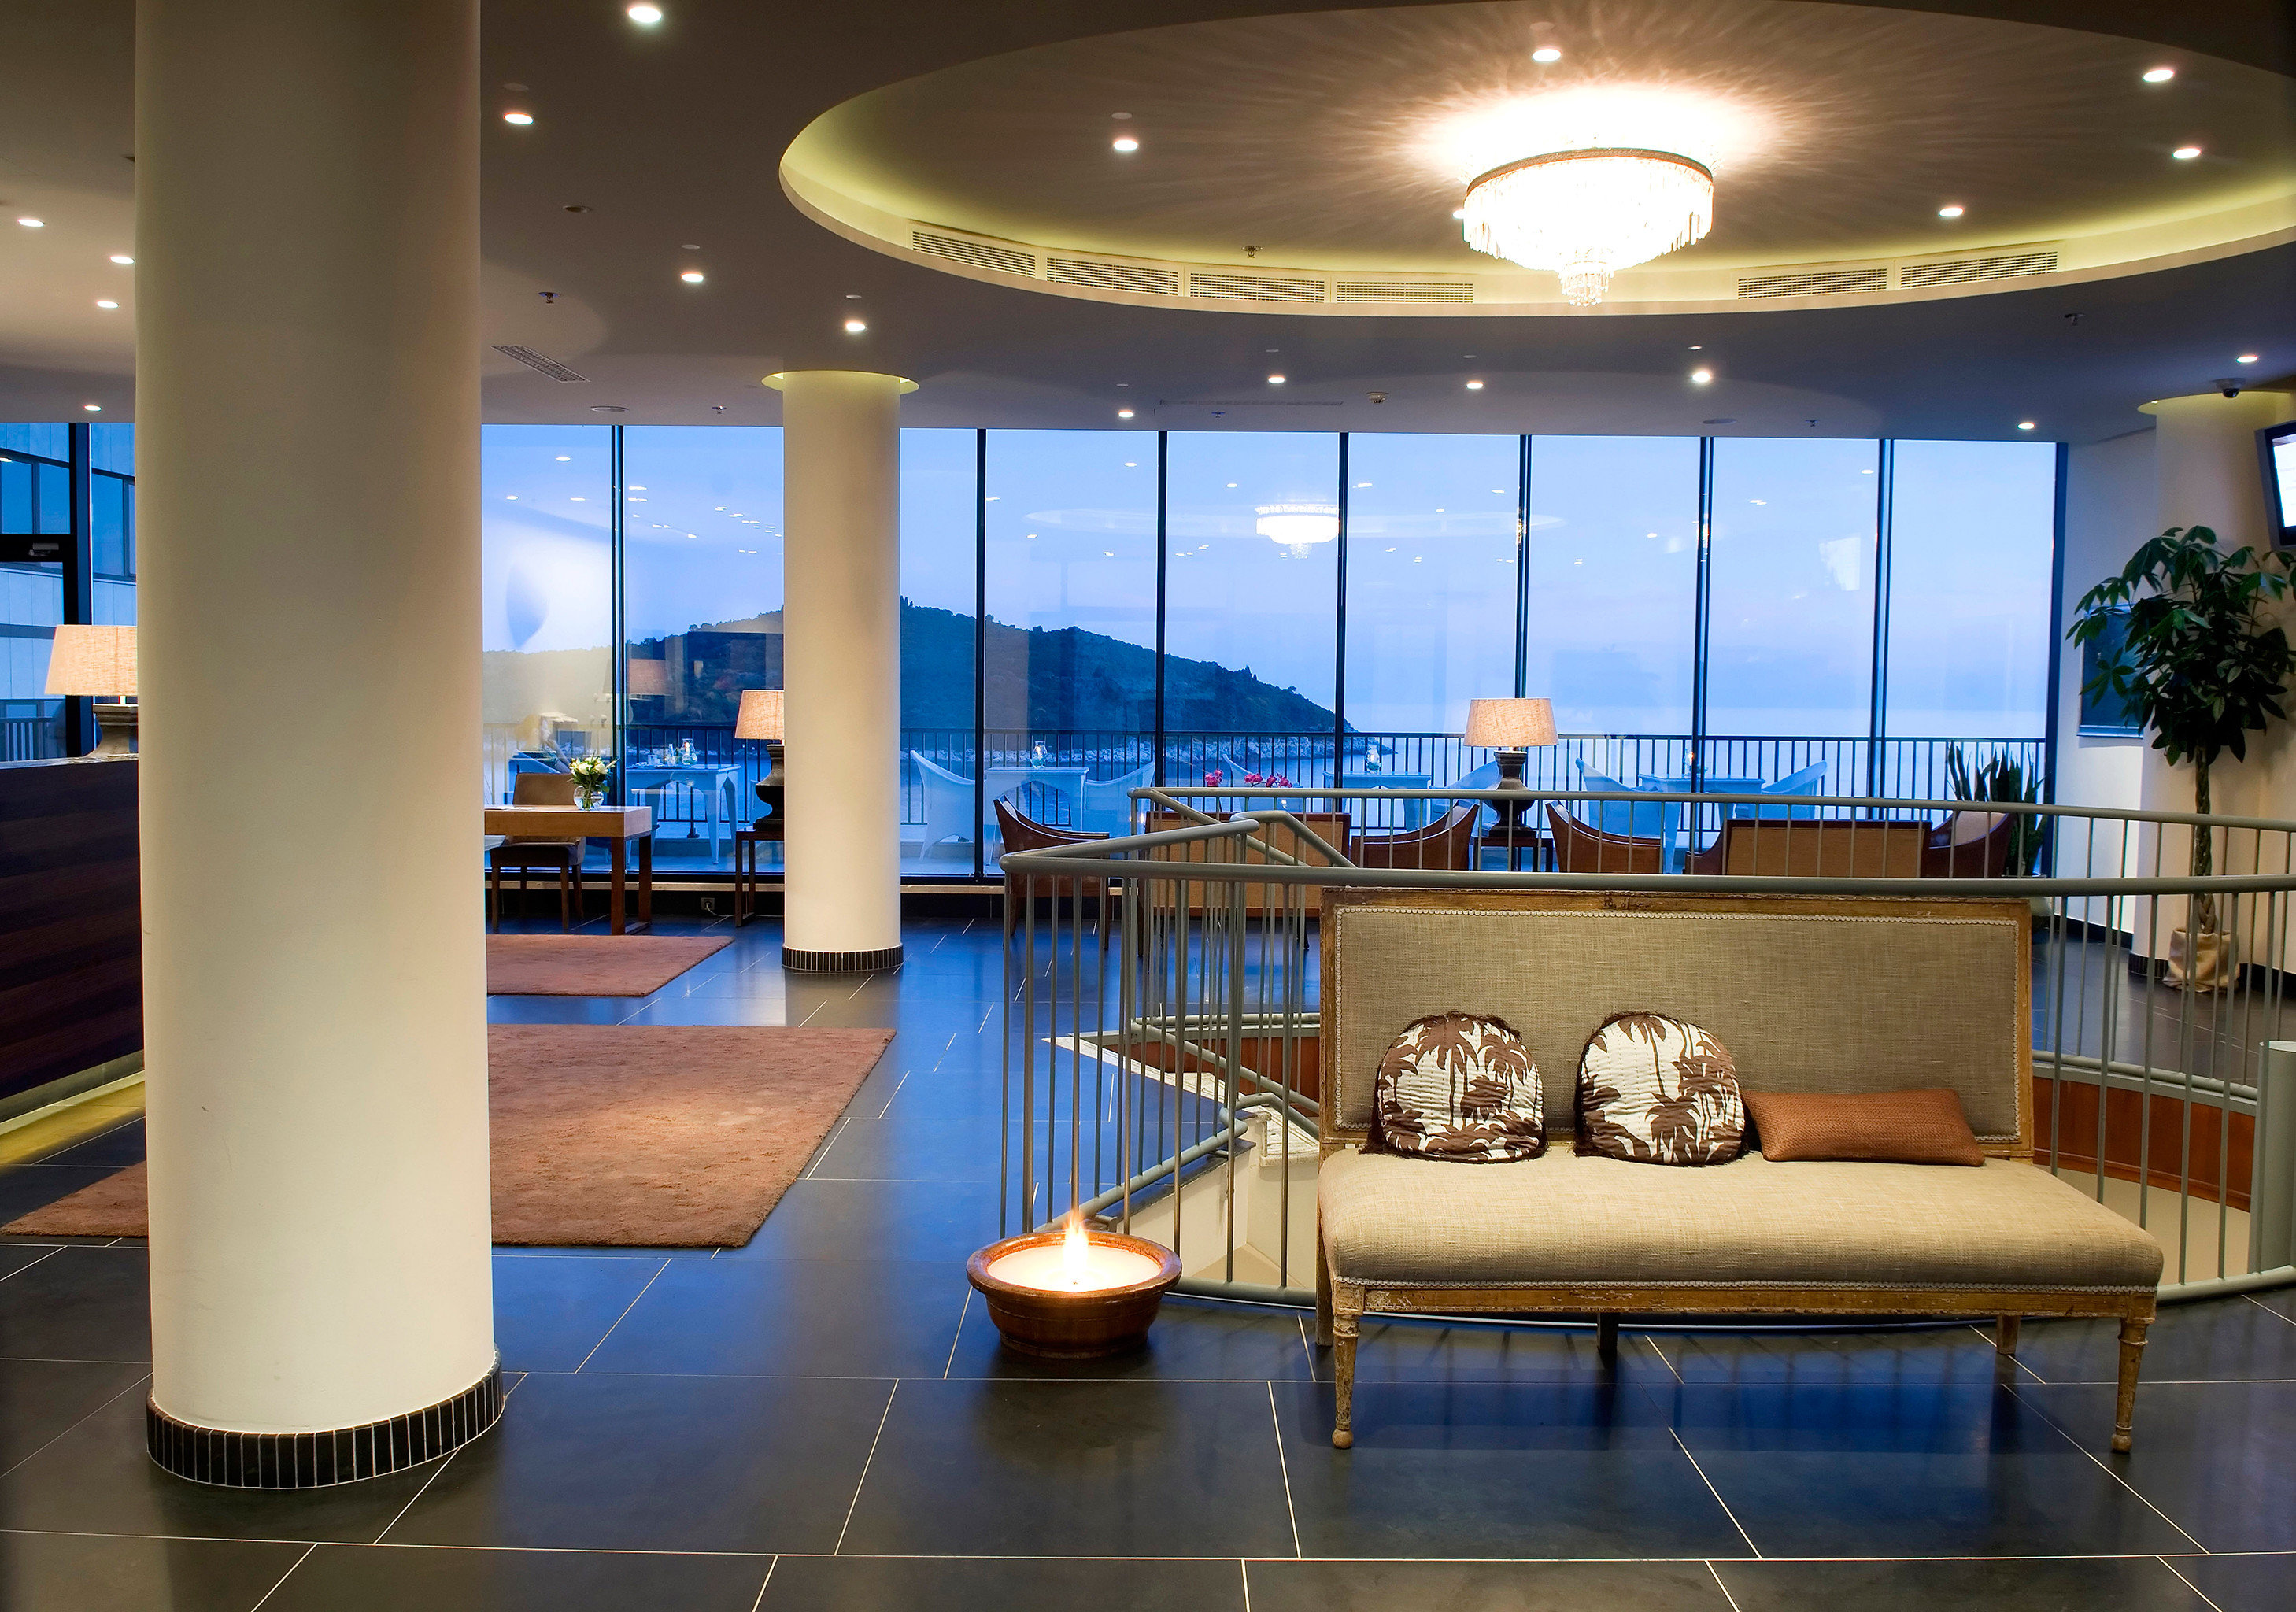 Lobby Scenic views Trip Ideas Architecture lighting yacht convention center living room headquarters